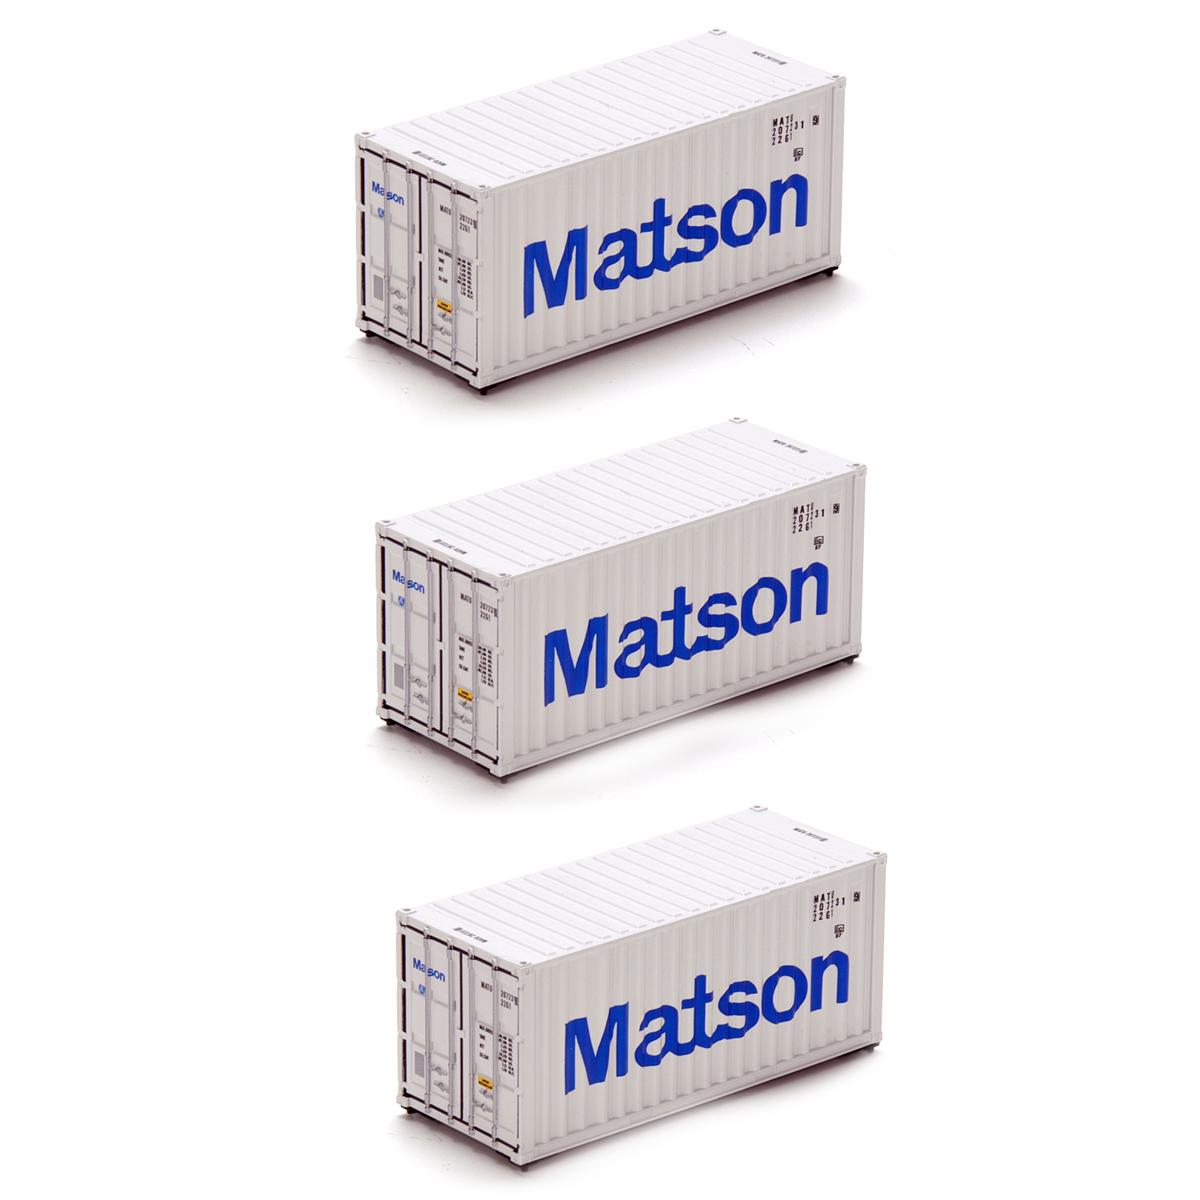 Ho rtr 20 39 container matson 3 ath28824 athearn trains - Matson container homes ...